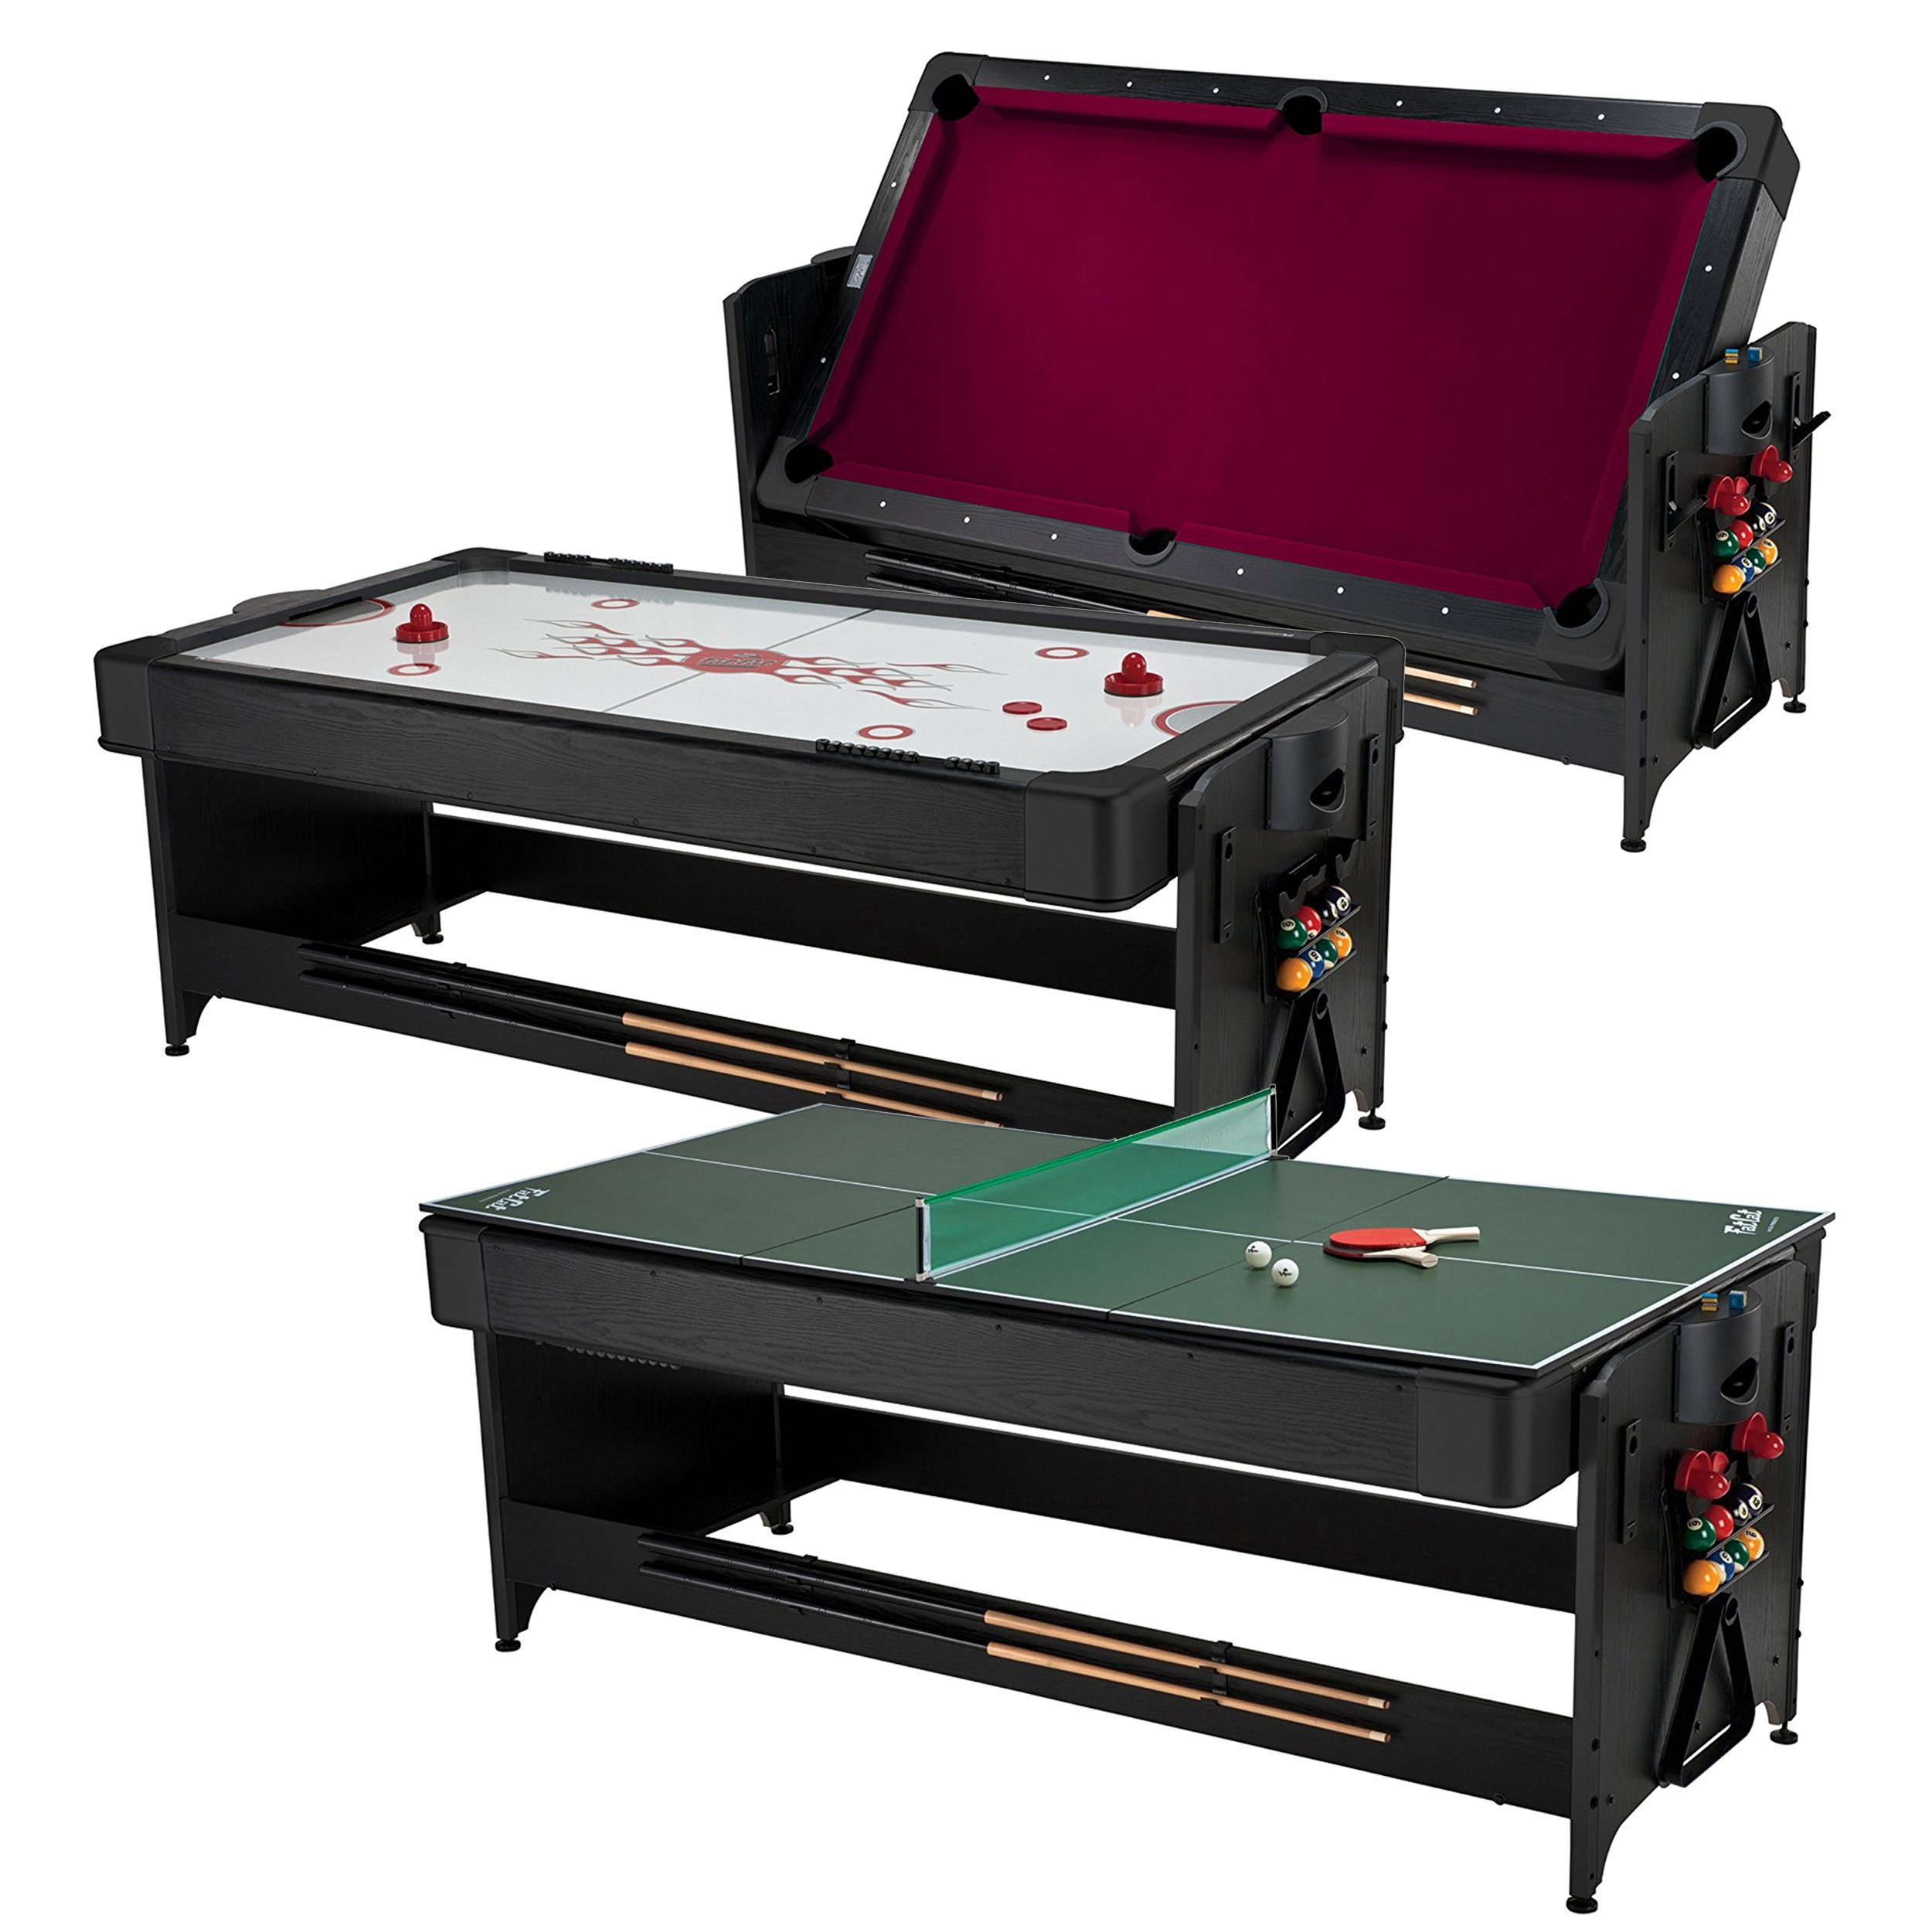 Fat Cat Pockey 7 Feet Black 3-in-1 Air Hockey, Billiards with Burgundy Felt, and Table Tennis Table by Fat Cat